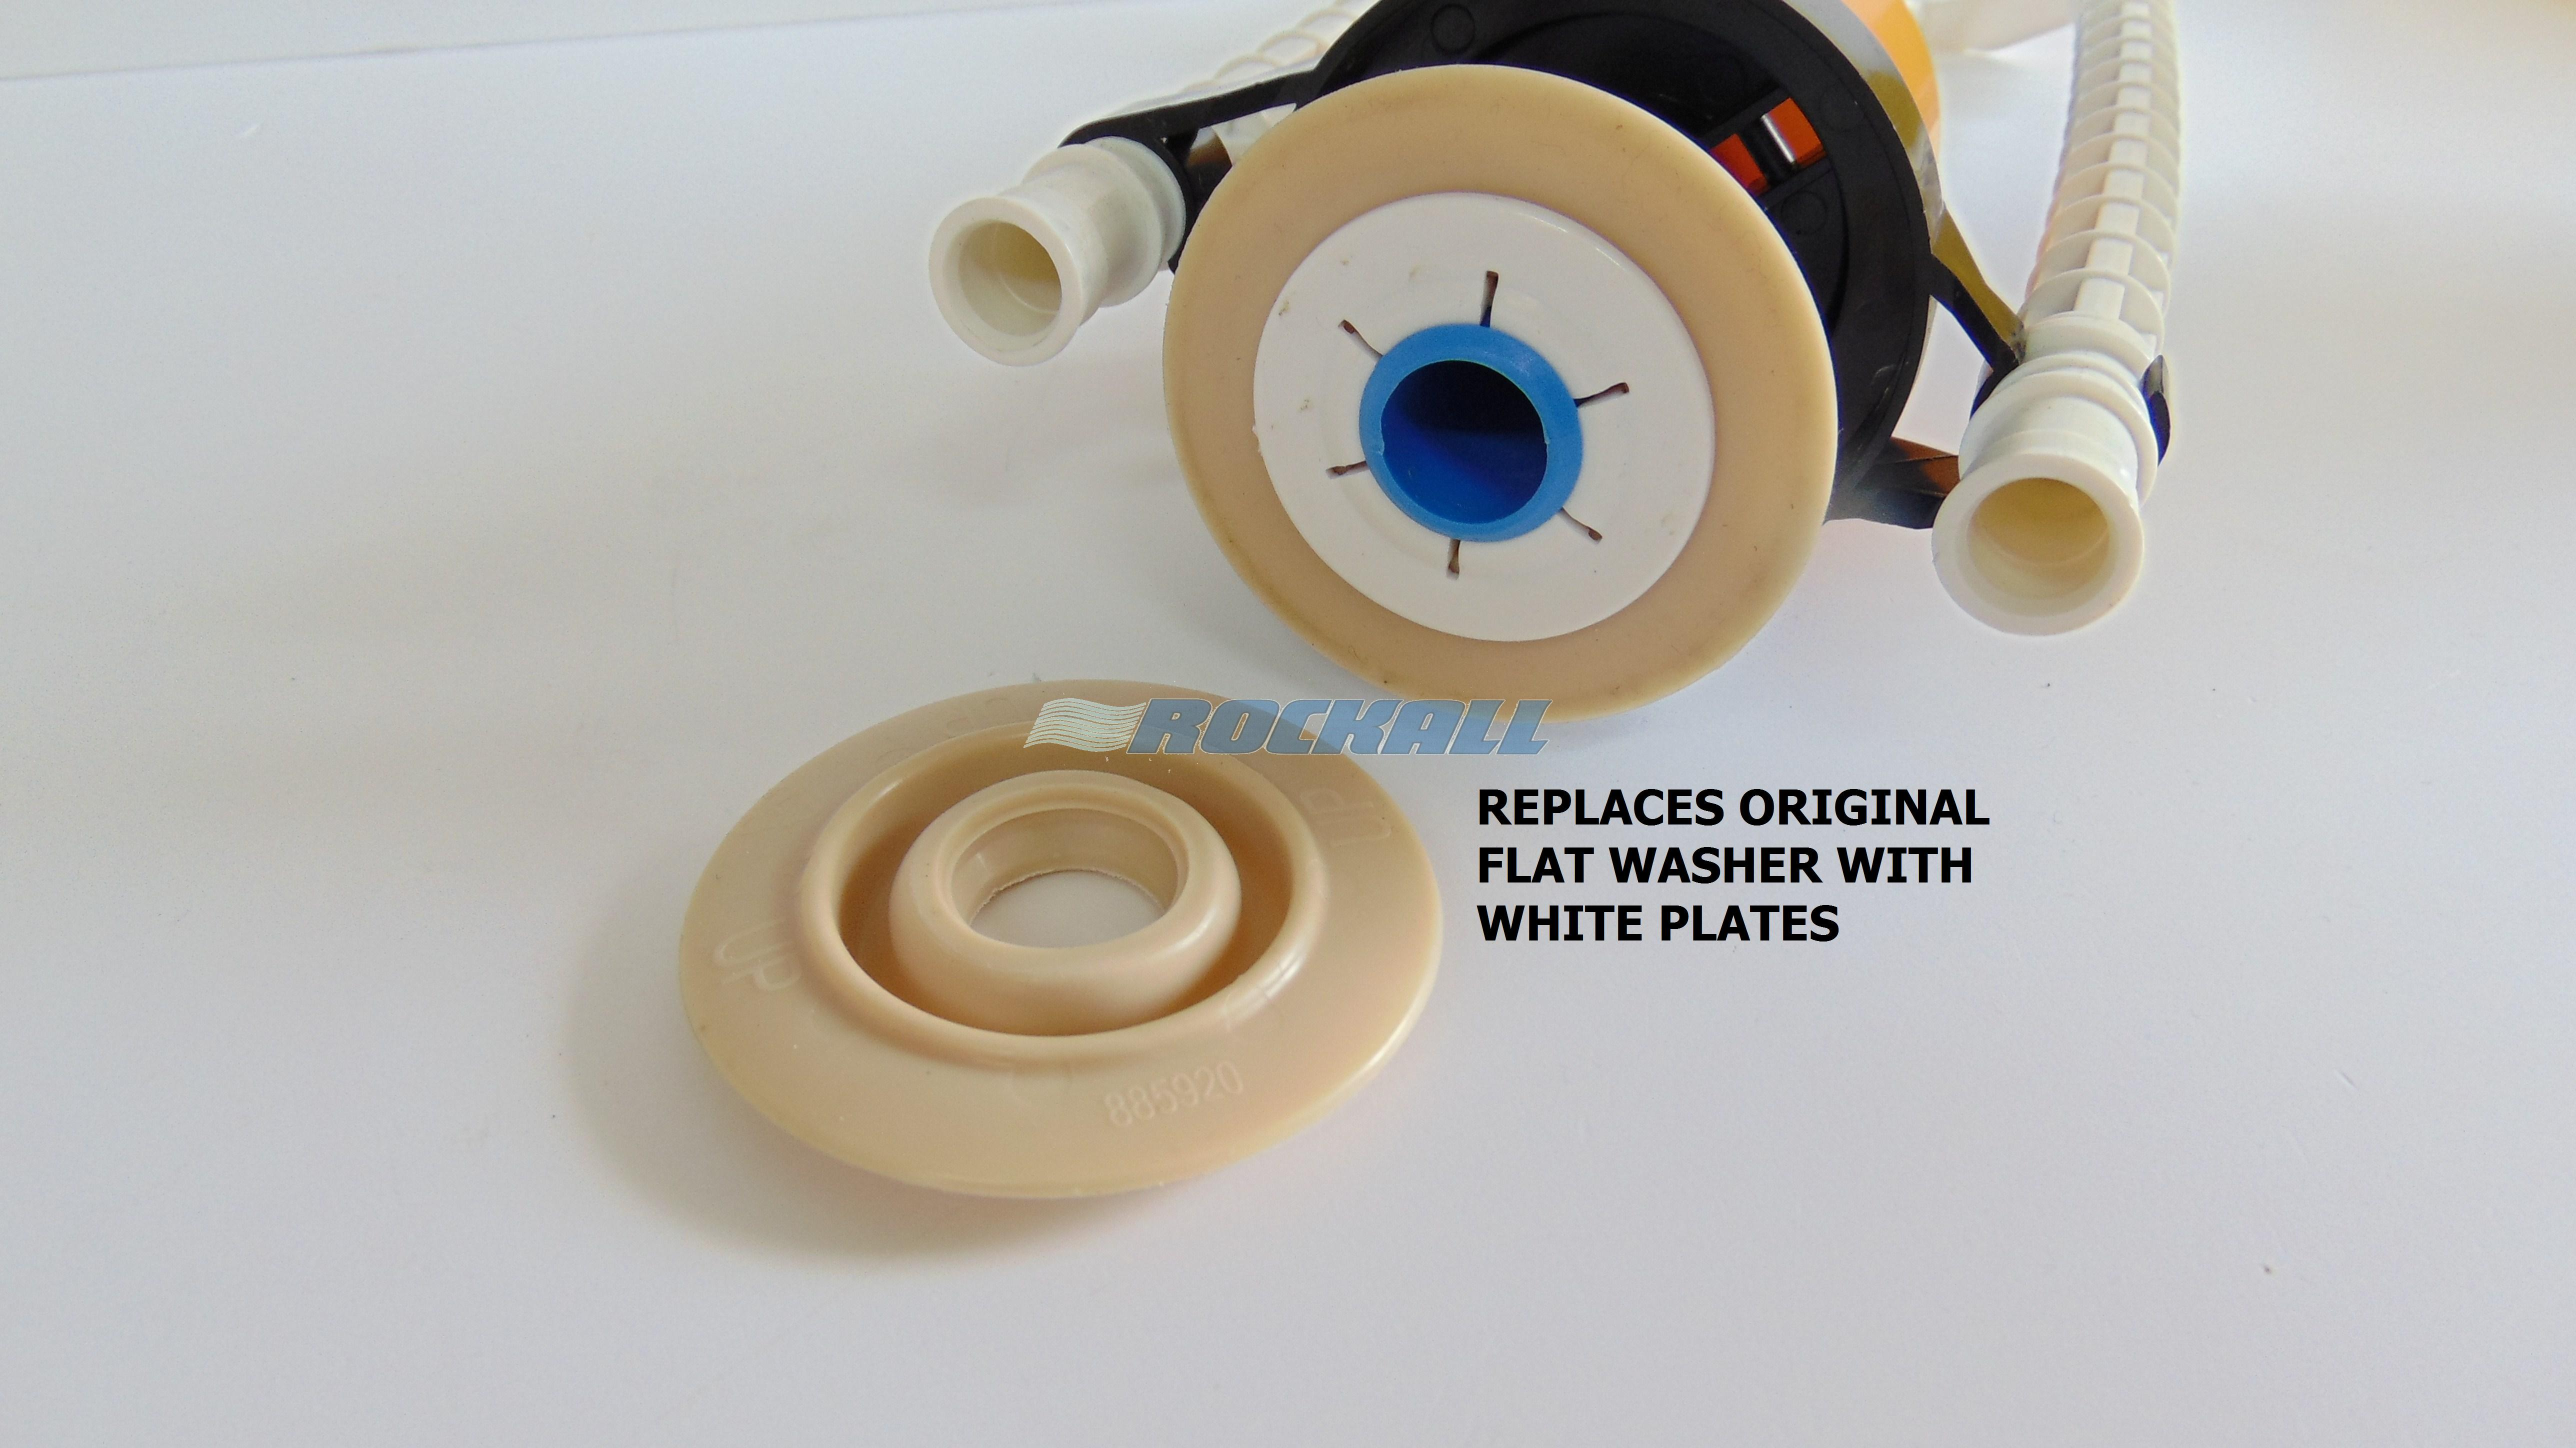 IMPULSE IMPERIAL WISA DIAPRHAGM WASHER SEAL YELLOW.JPG